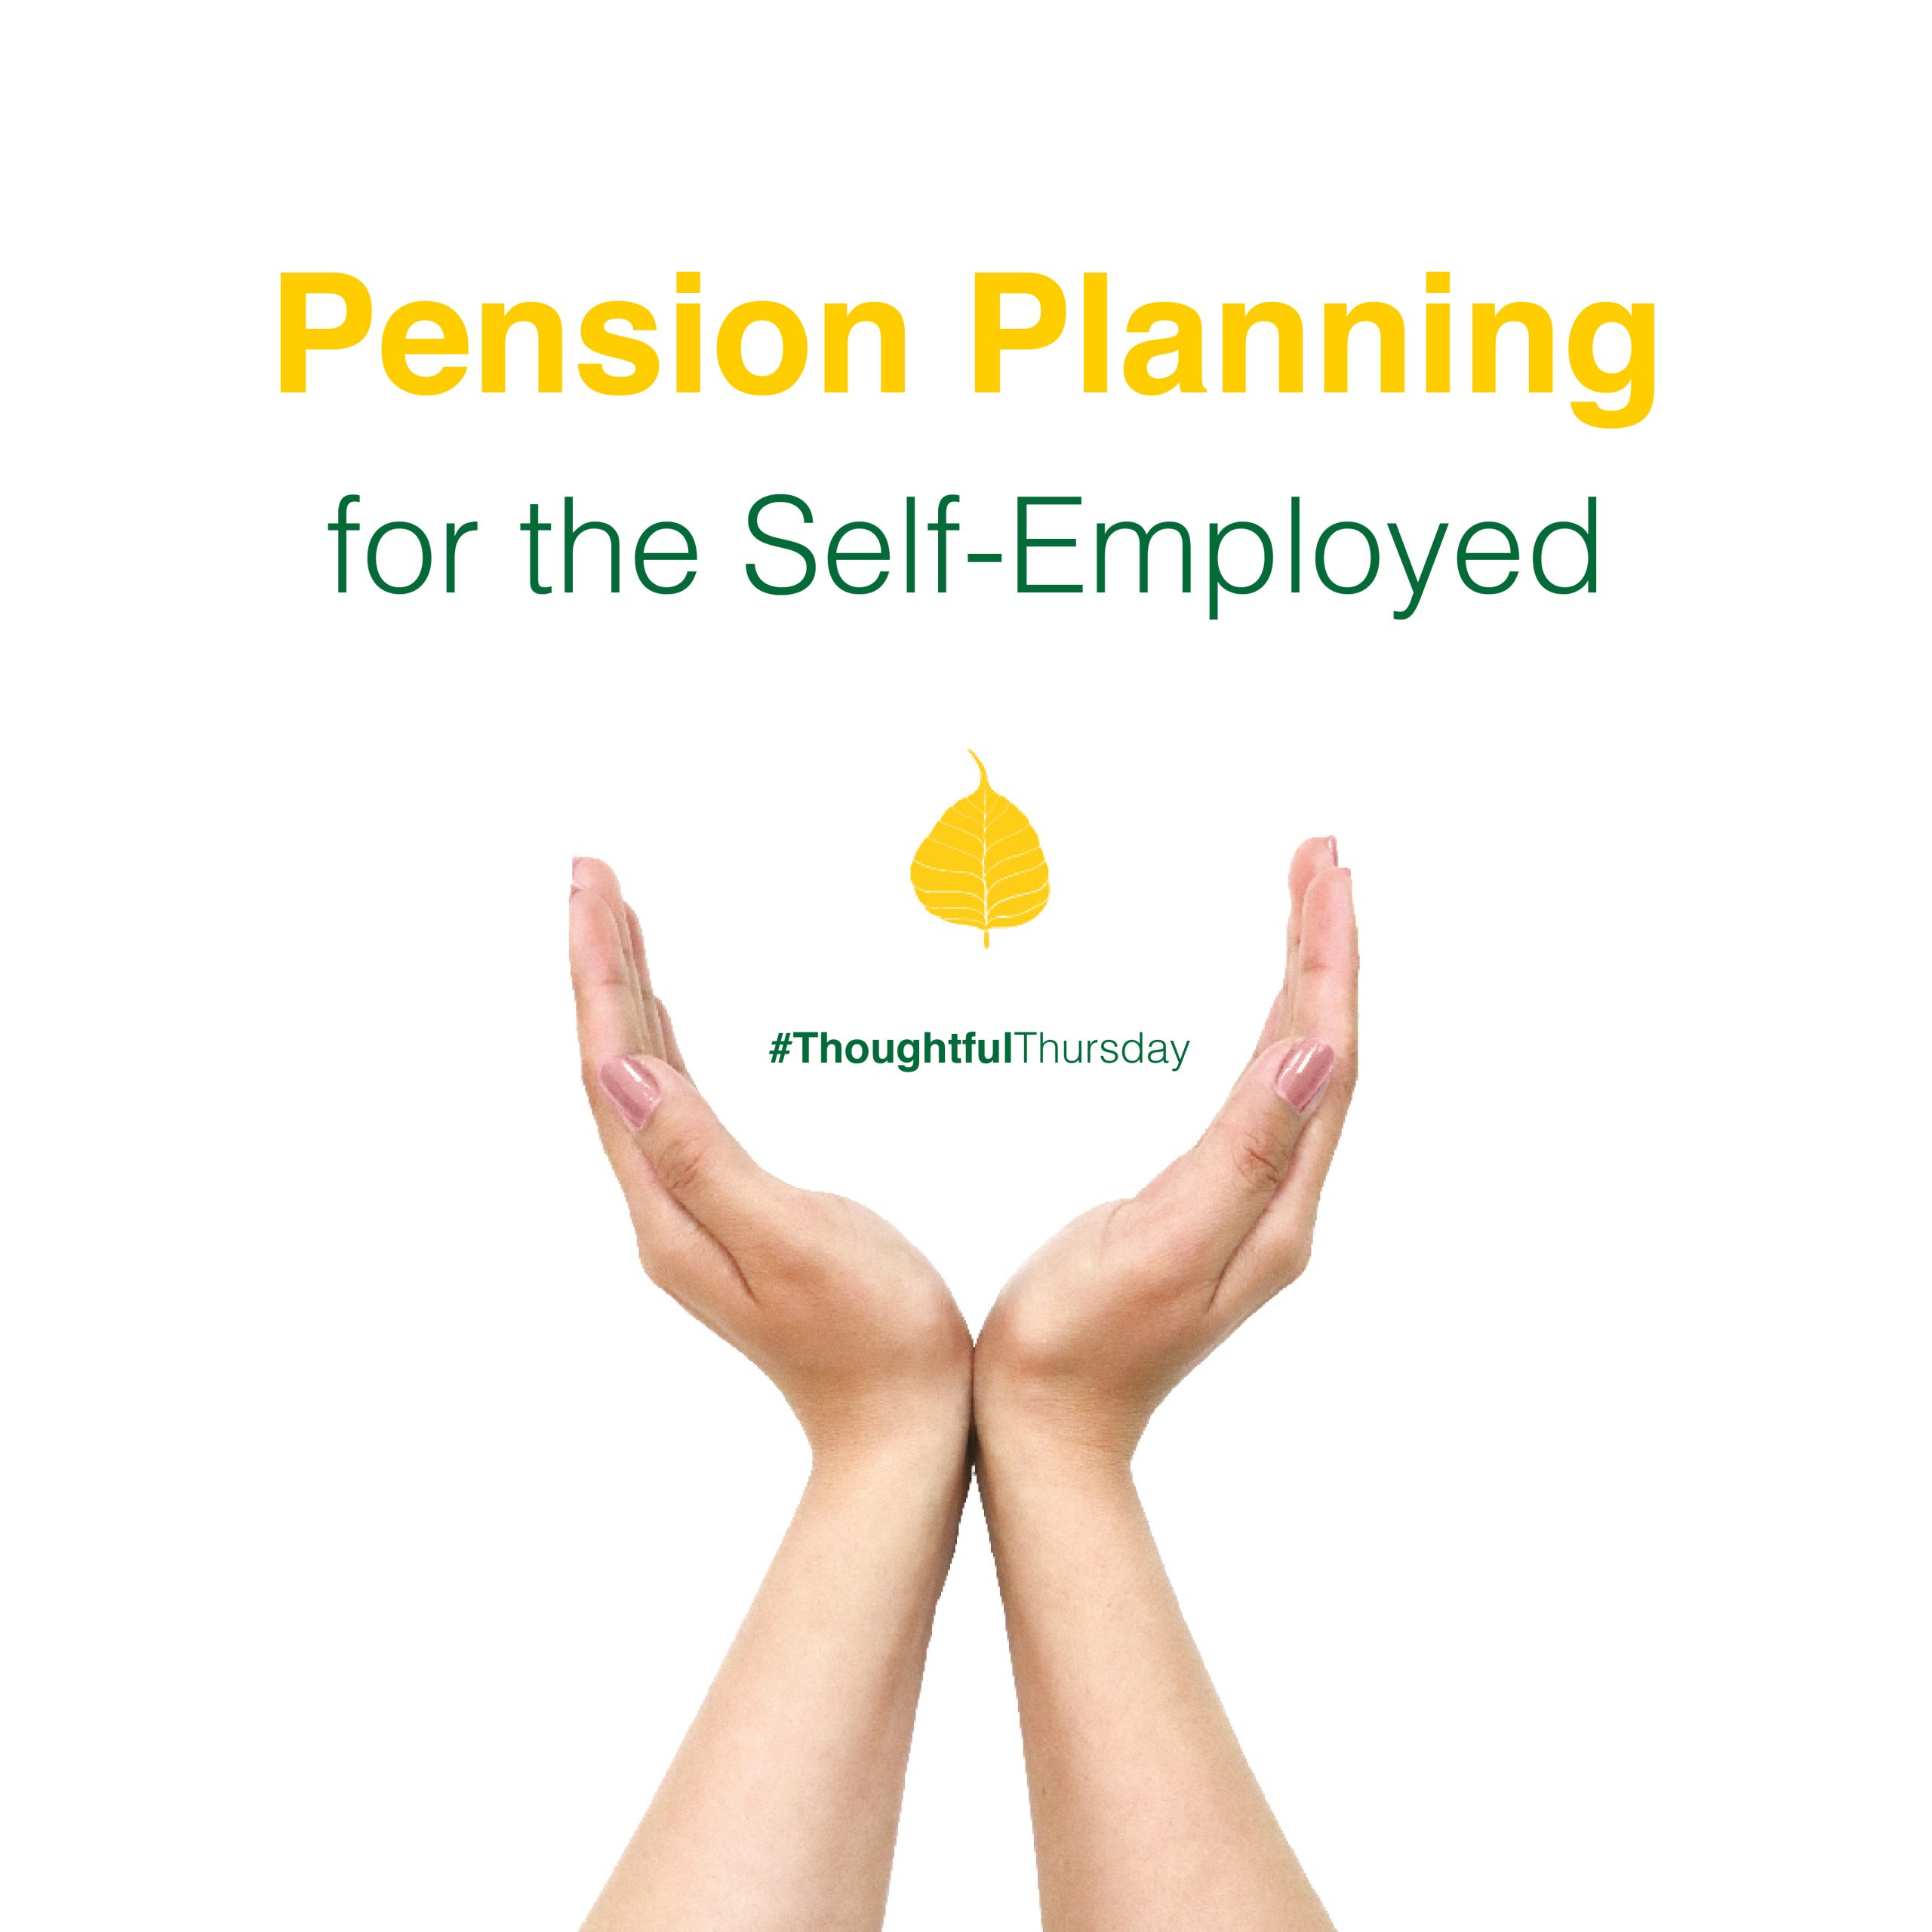 Pension Planning for the Self-employed